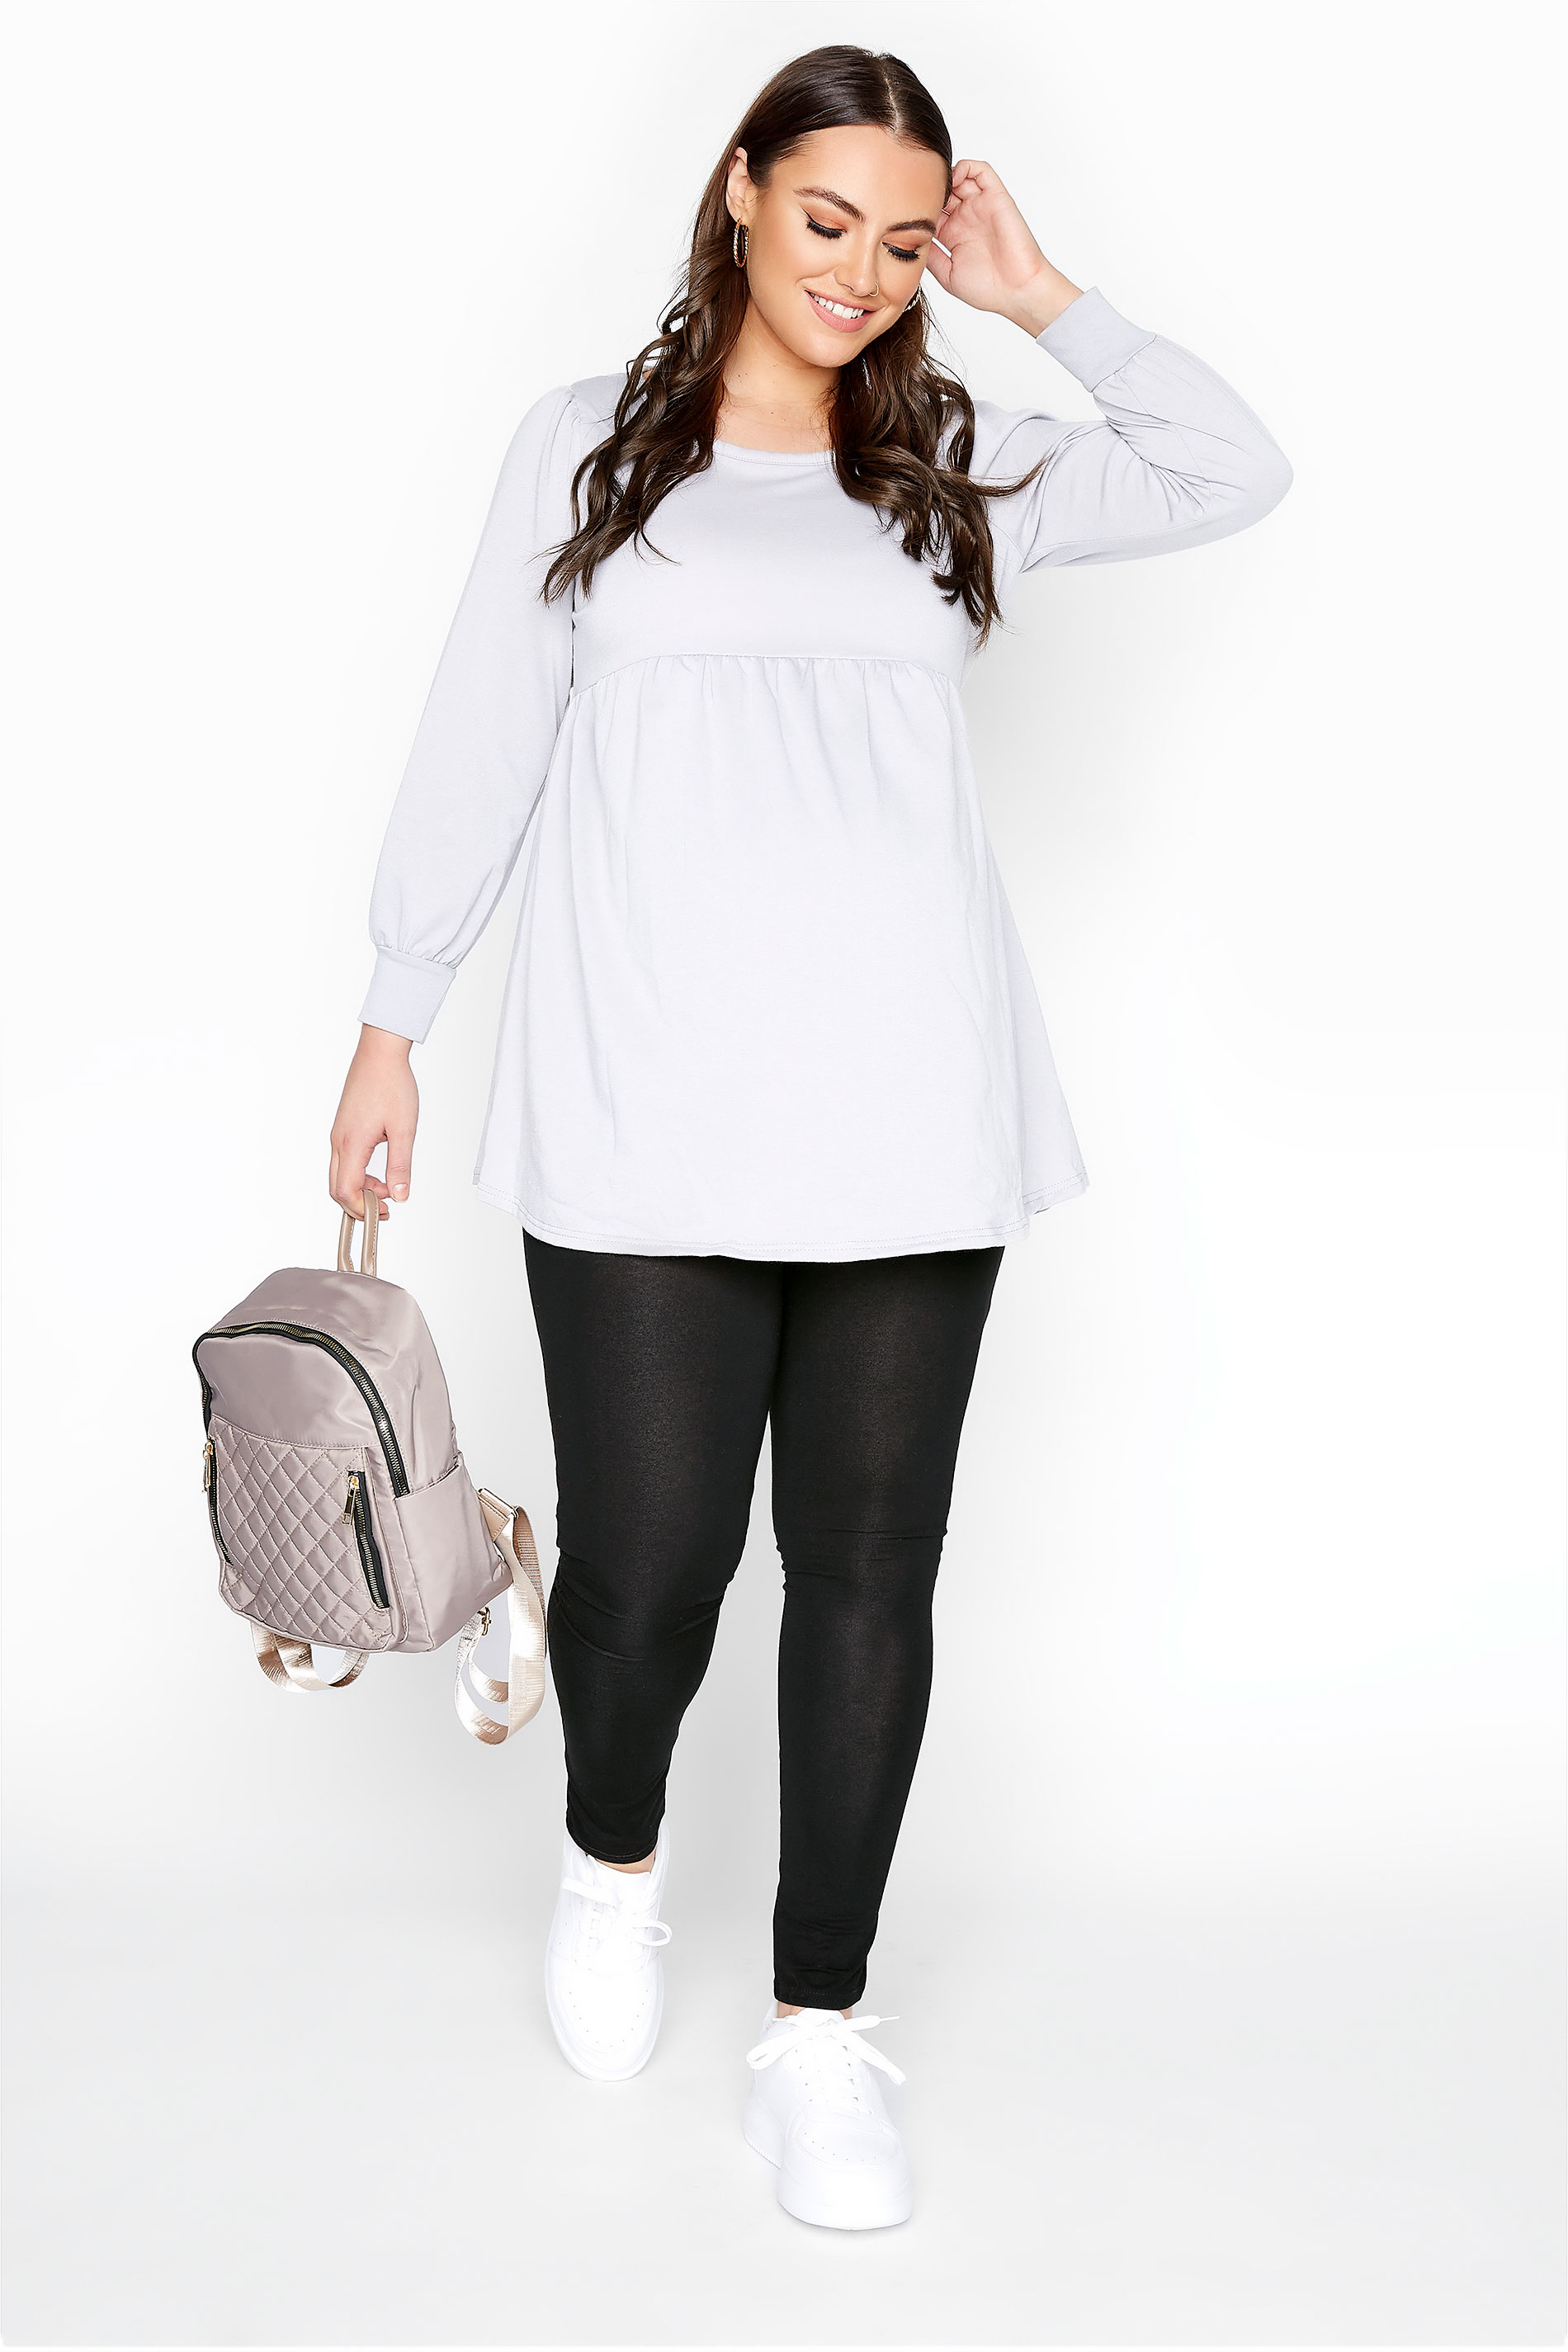 BUMP IT UP MATERNITY Black Jersey Leggings With Comfort Panel